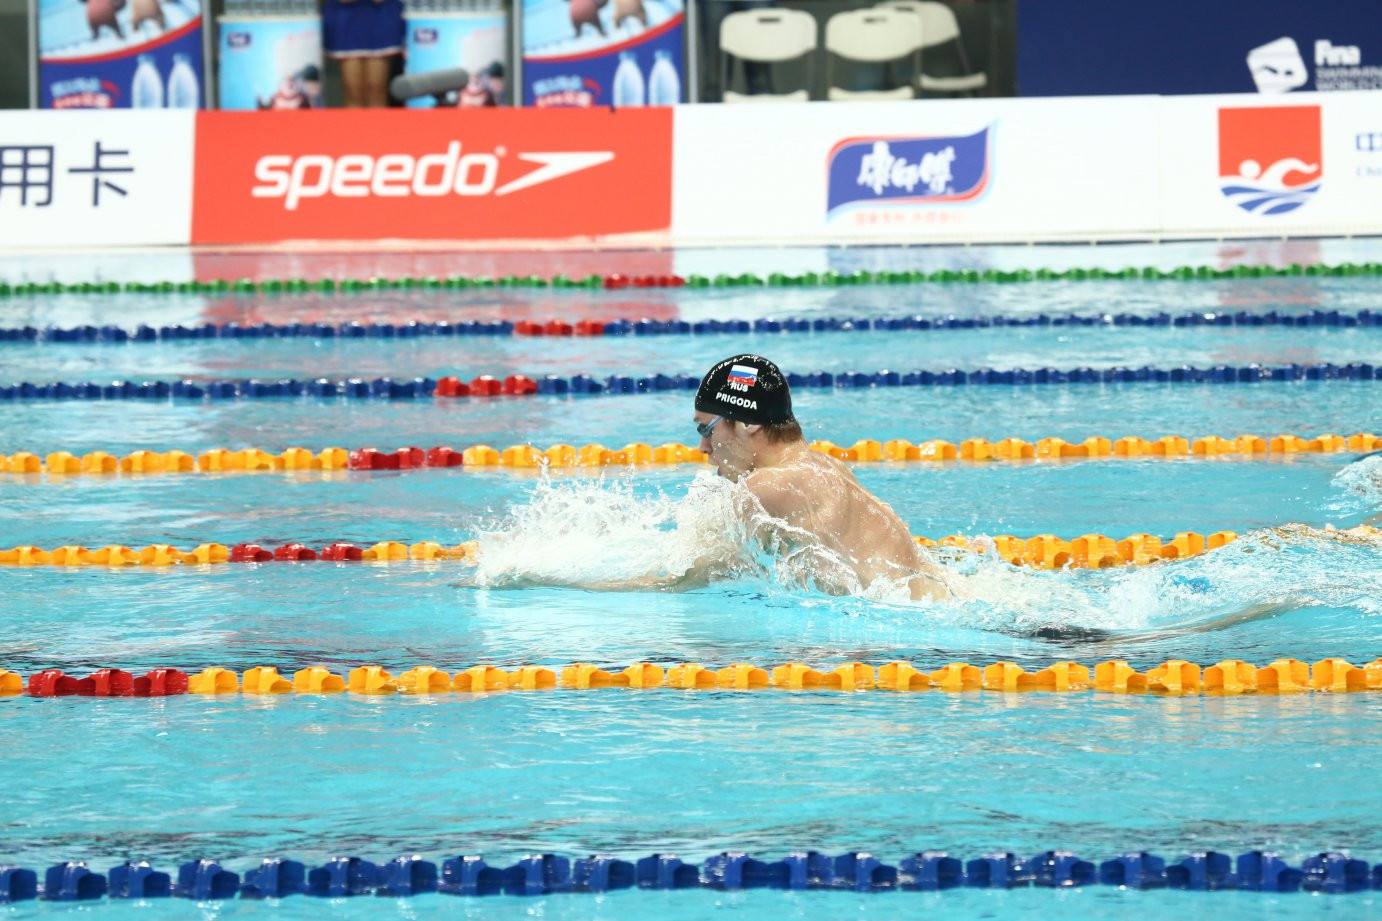 More gold for Hosszu and Morozov as Beijing's Swimming World Cup ends in Water Cube that will soon be an Ice Cube